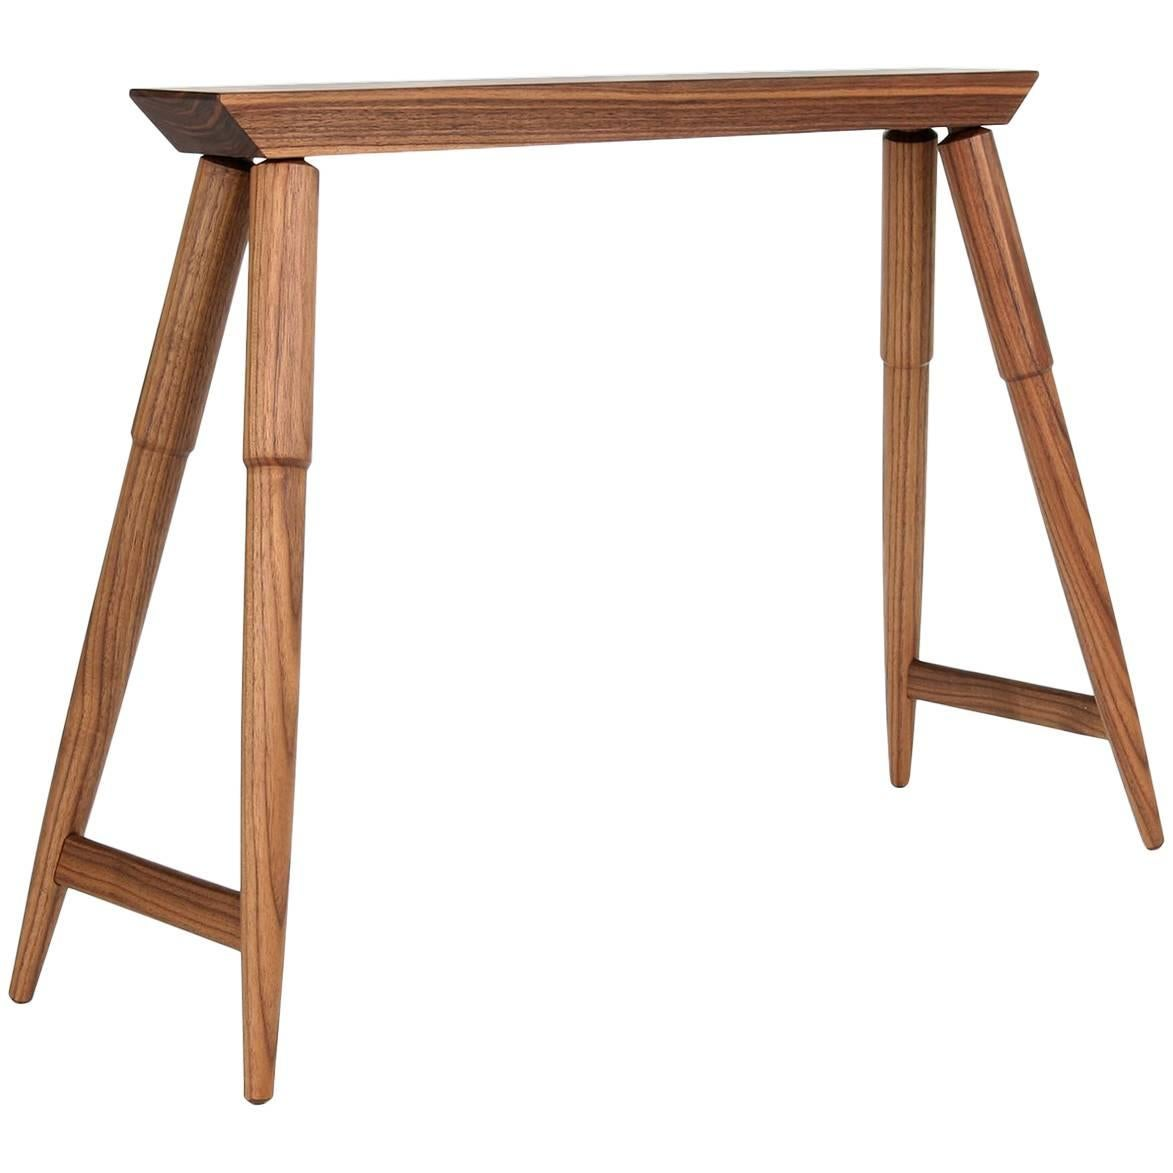 Rockport Sawhorse, Contemporary Hardwood Accent Piece Custom Made By Studio  Dunn